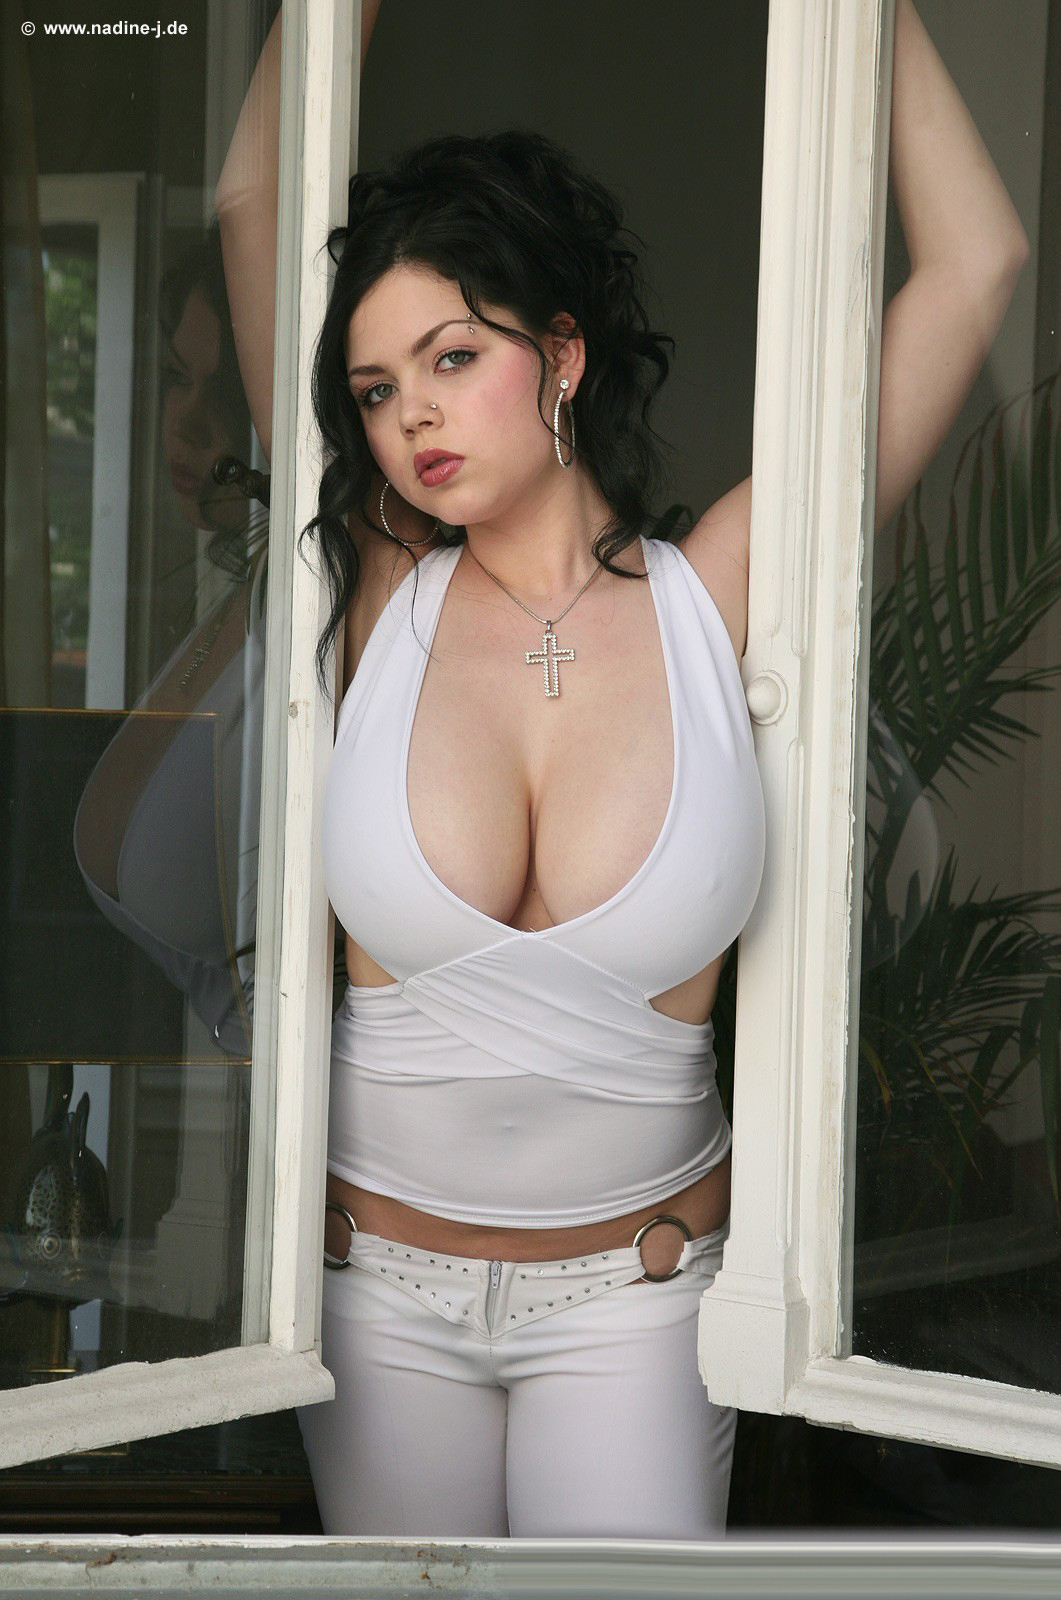 Dark haired chick Shione Cooper seduces her man friend with her huge boobs № 189350 бесплатно